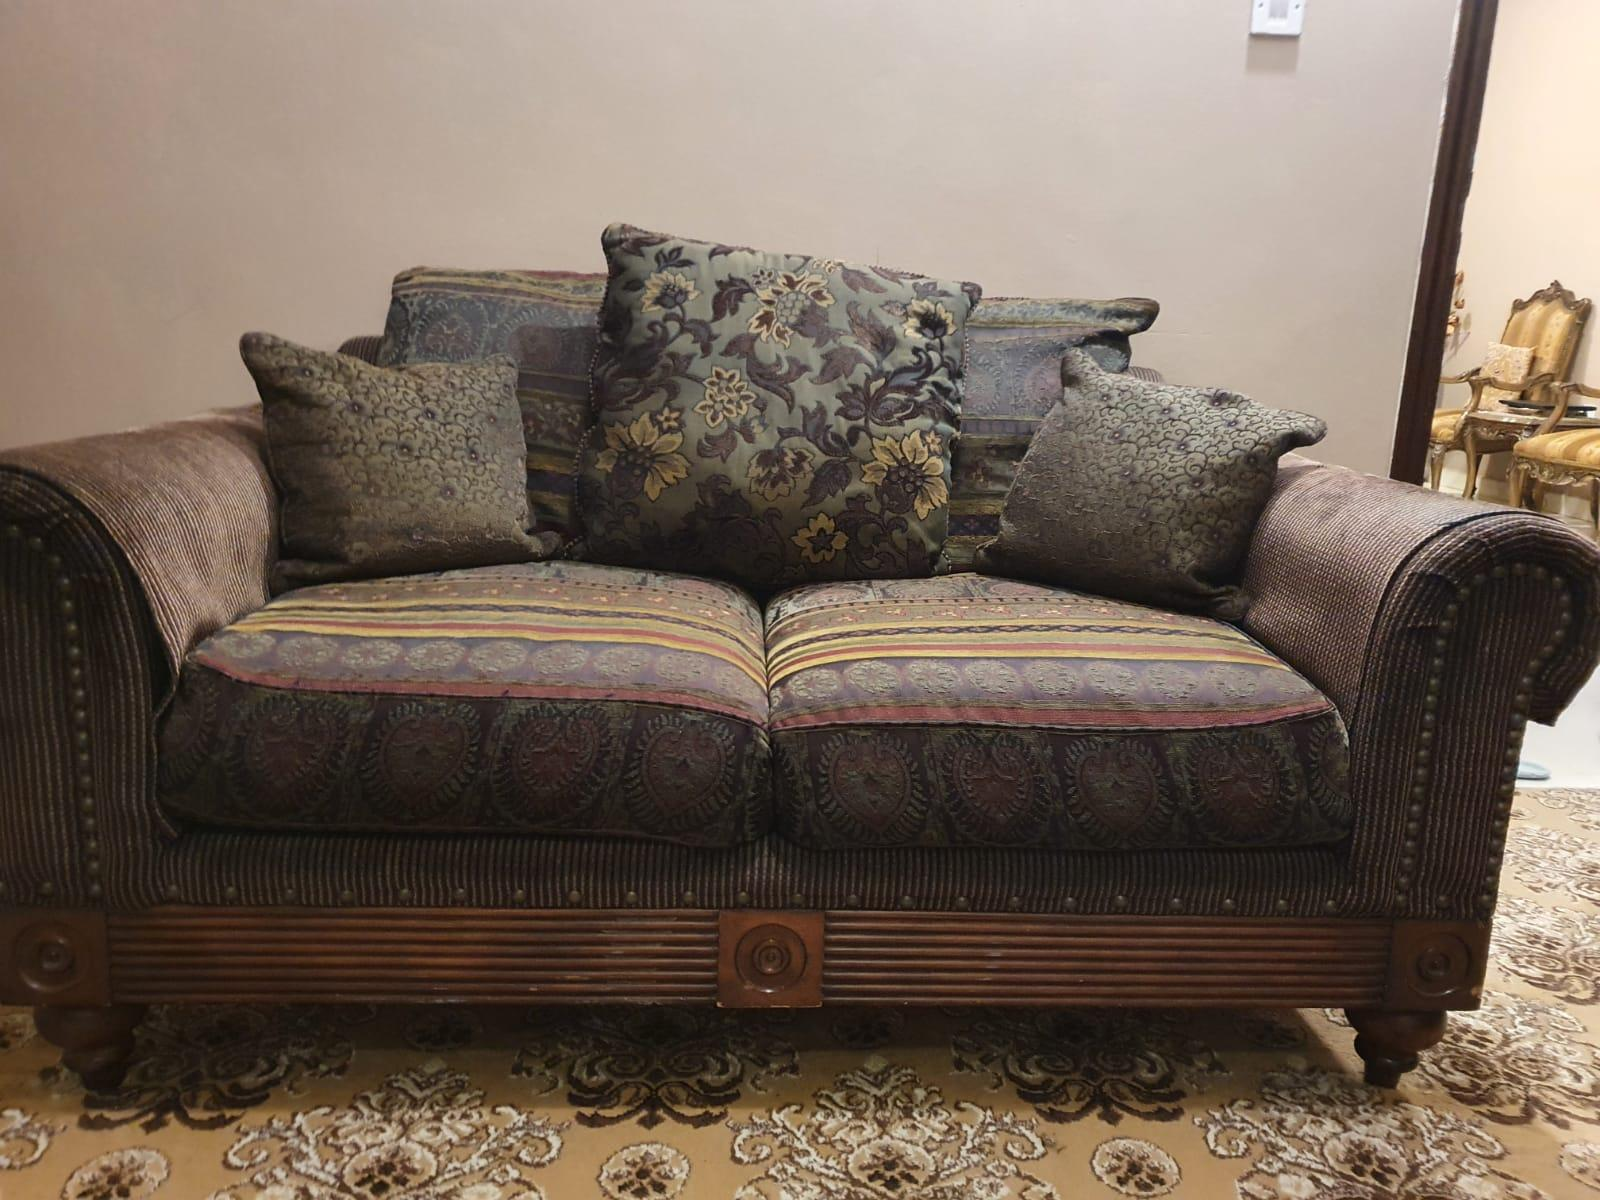 Sofa Set 7 Seater (3+2+2) from Home Center for Sal